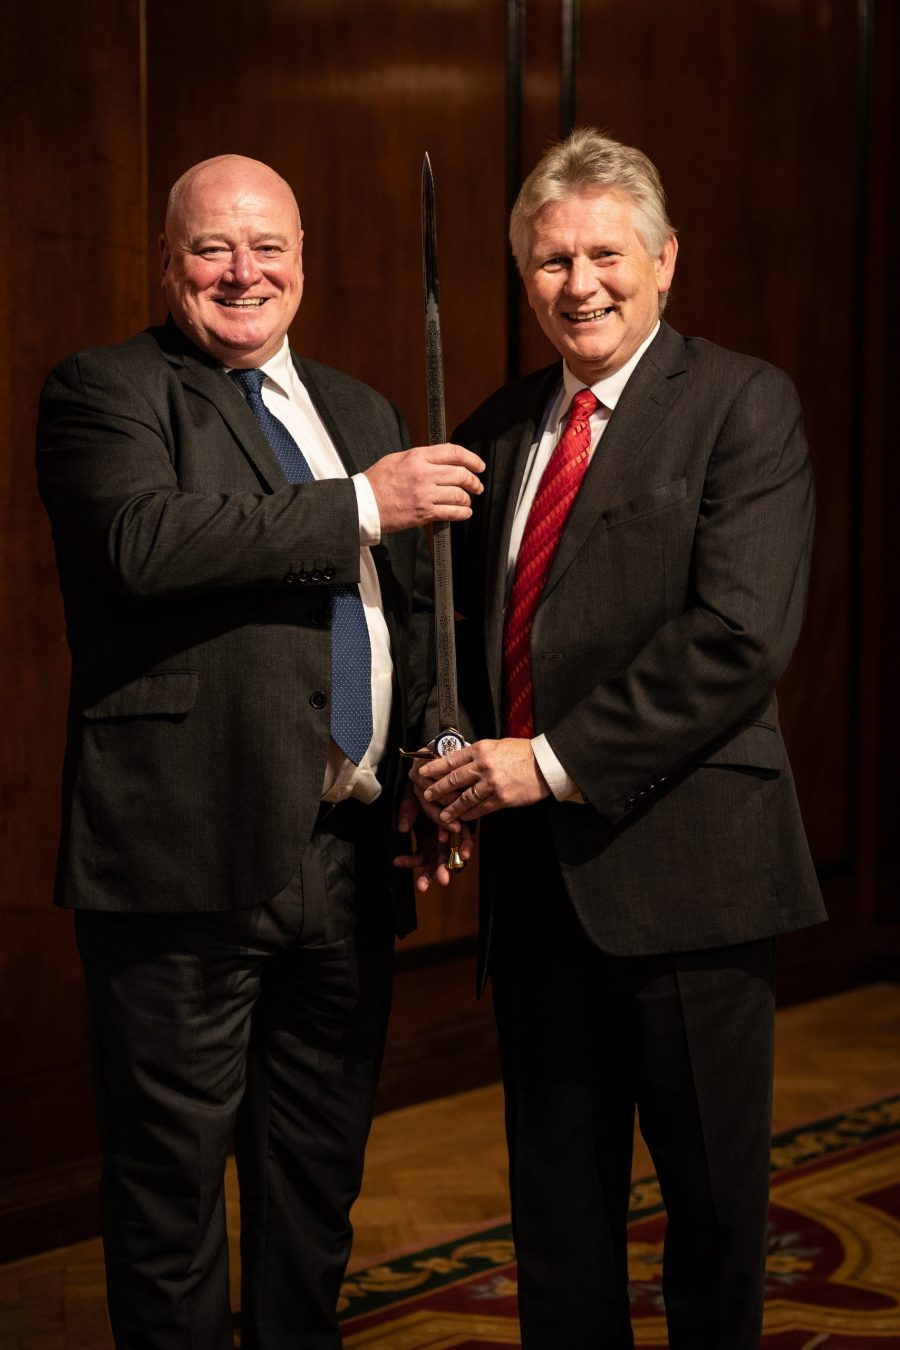 Mike O'Neill receiving the Sword of Honour from Mike Robinson, Chief Executive of the British Safety Council.